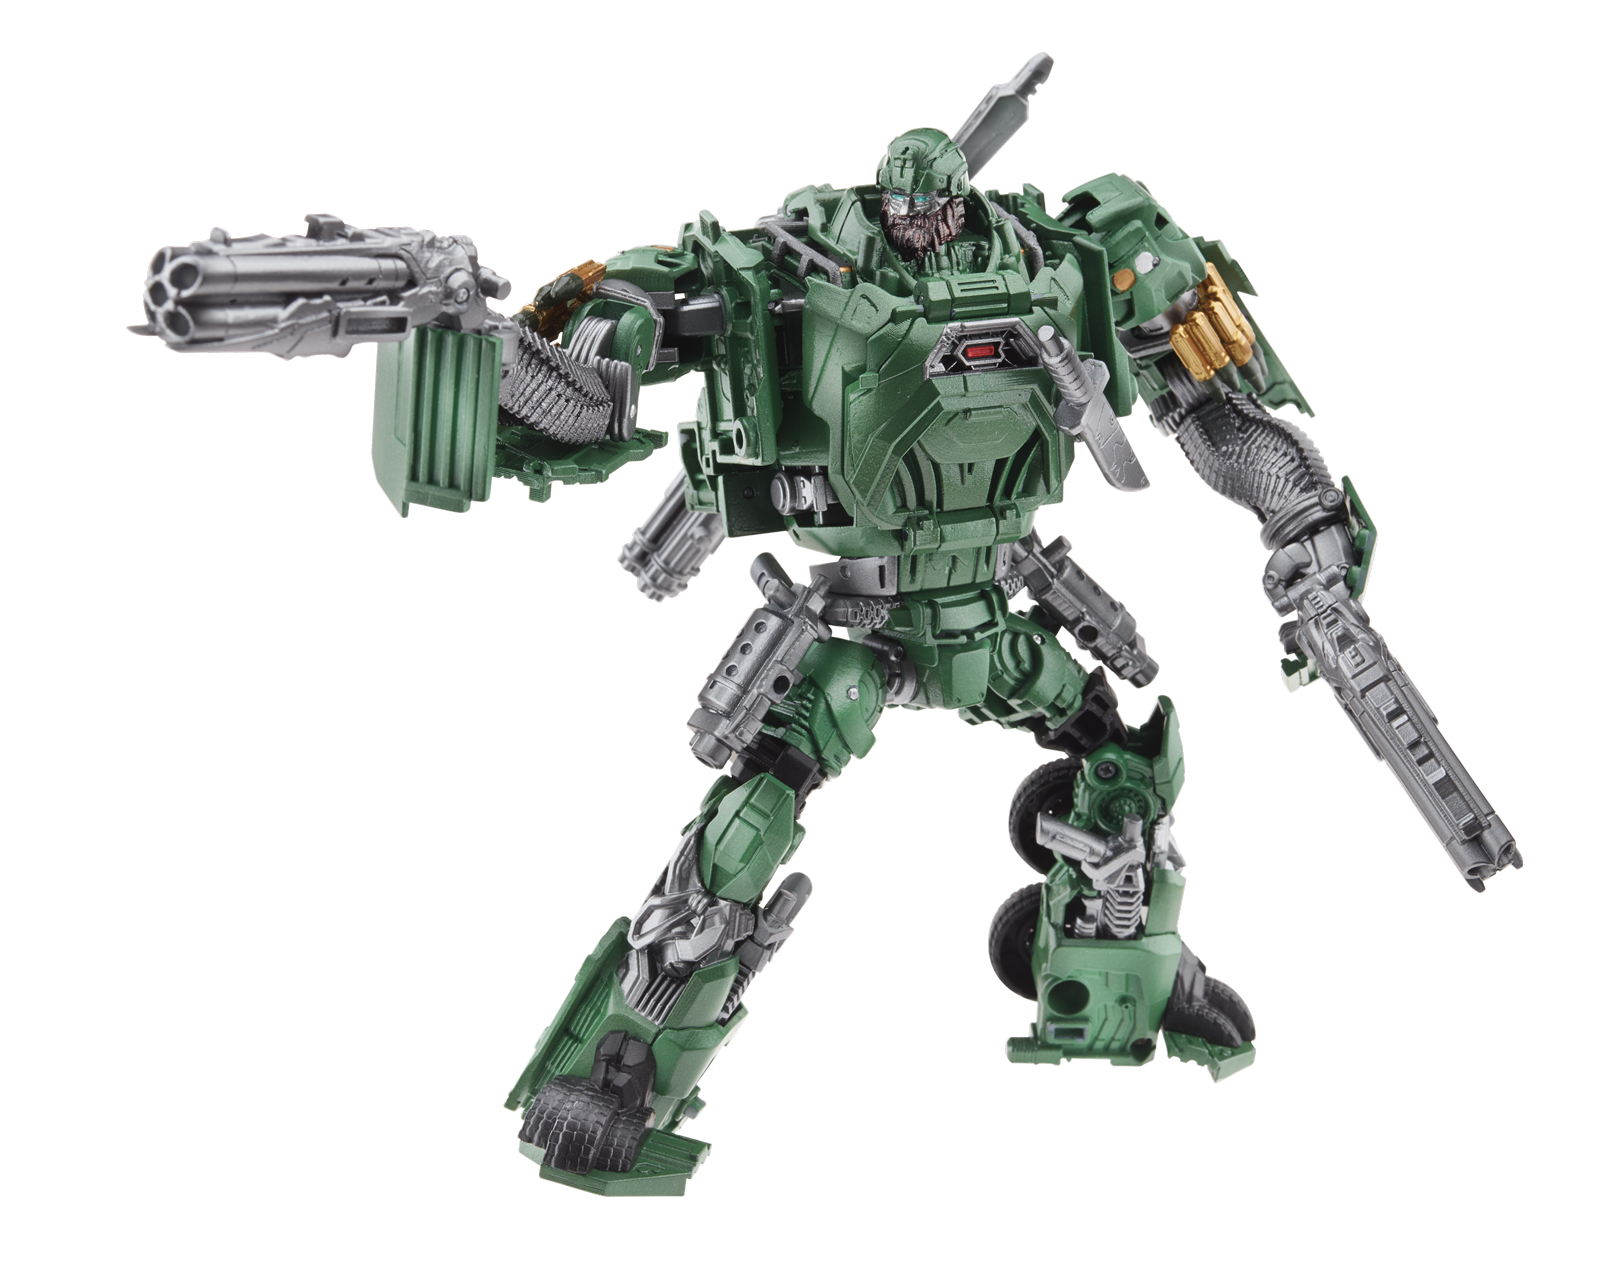 All Transformers Toys : Autobot hound transformers toys tfw